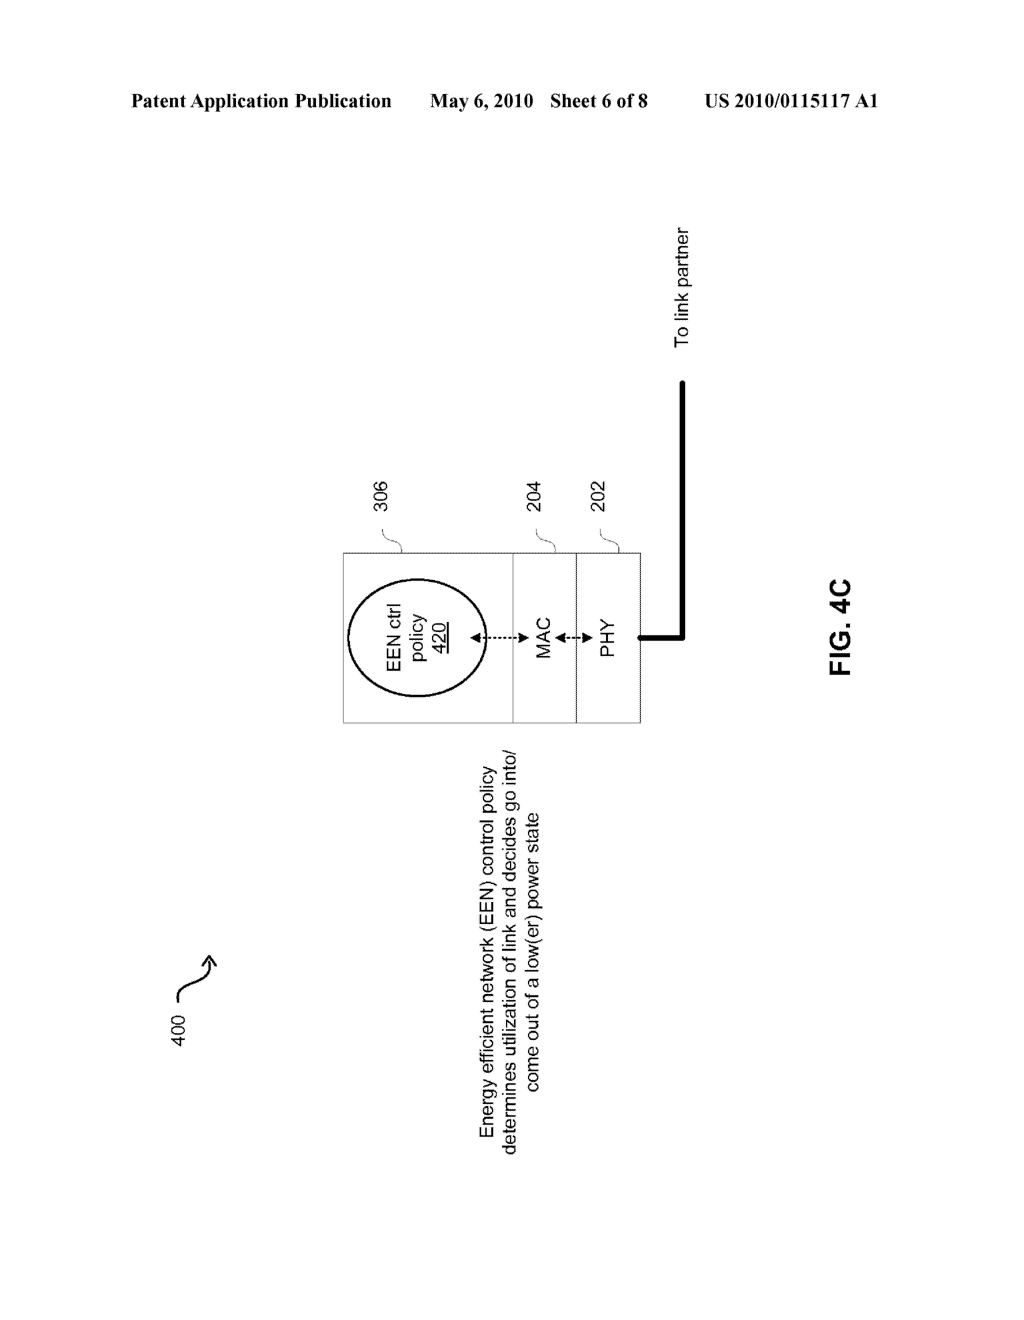 Method And System For Packet Based Signaling Between A MAC And A PHY To Manage Energy Efficient Network Devices And/Or Protocols - diagram, schematic, and image 07